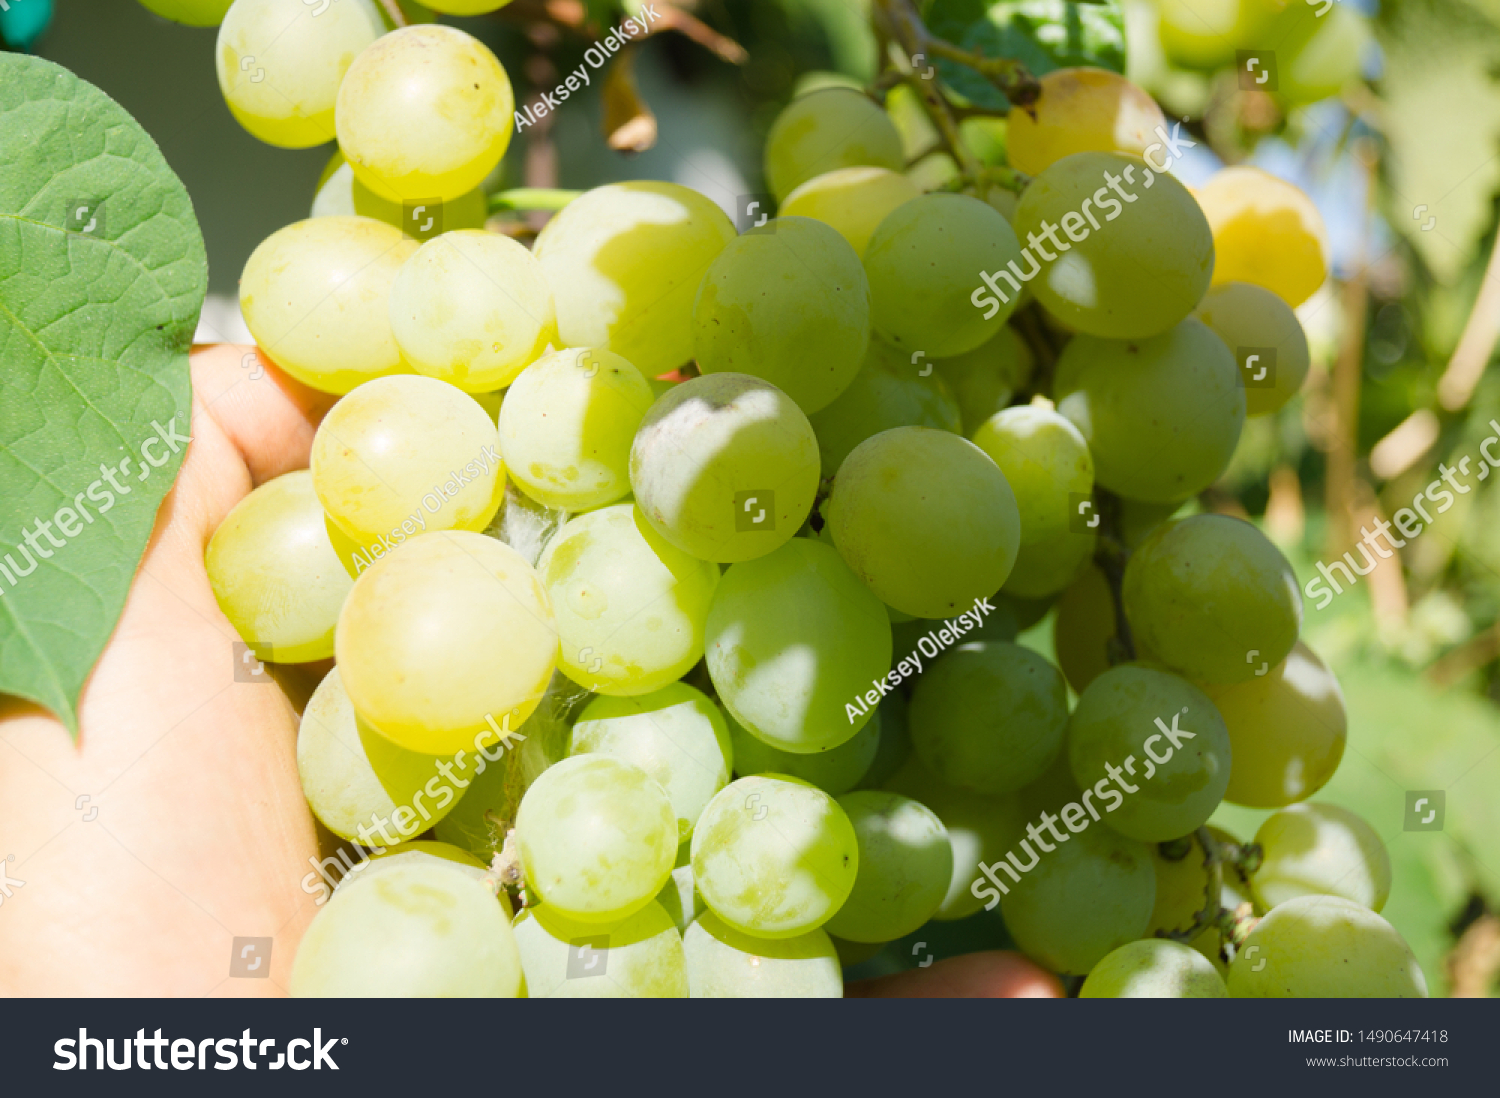 Harvest grapes. Large grapes. Grapes and winemaking. Large grapes. #1490647418